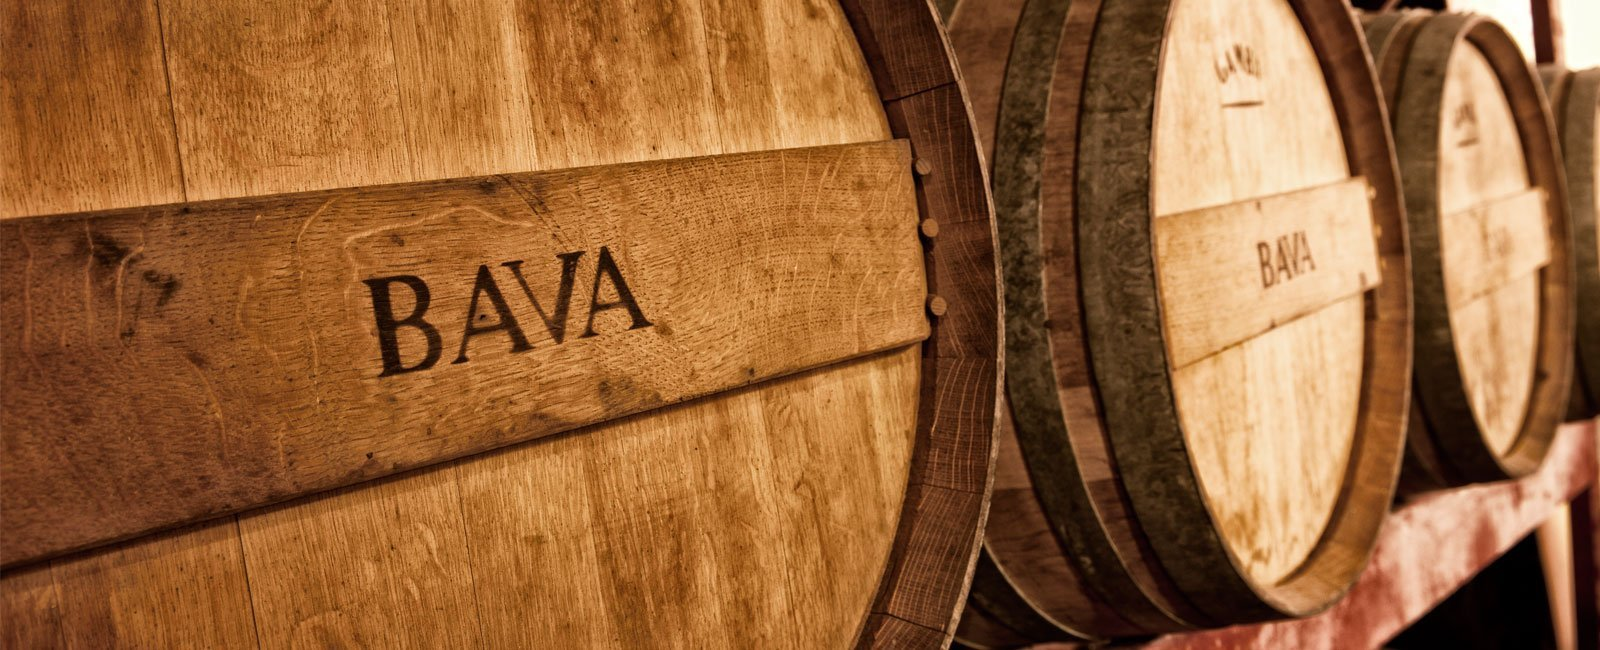 bava winery red and white wines of langhe and monferrato piedmont